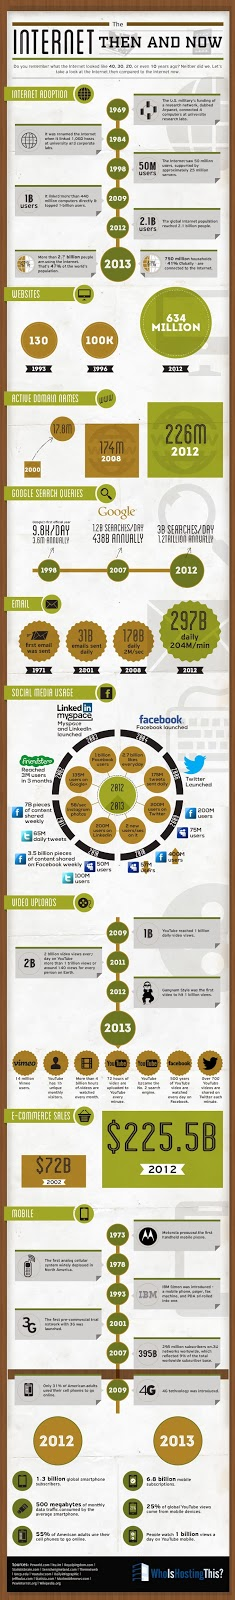 http://technorati.com/technology/article/the-internet-then-and-now-infographic/?utm_content=bufferb83b4&utm_medium=social&utm_source=twitter.com&utm_campaign=buffer